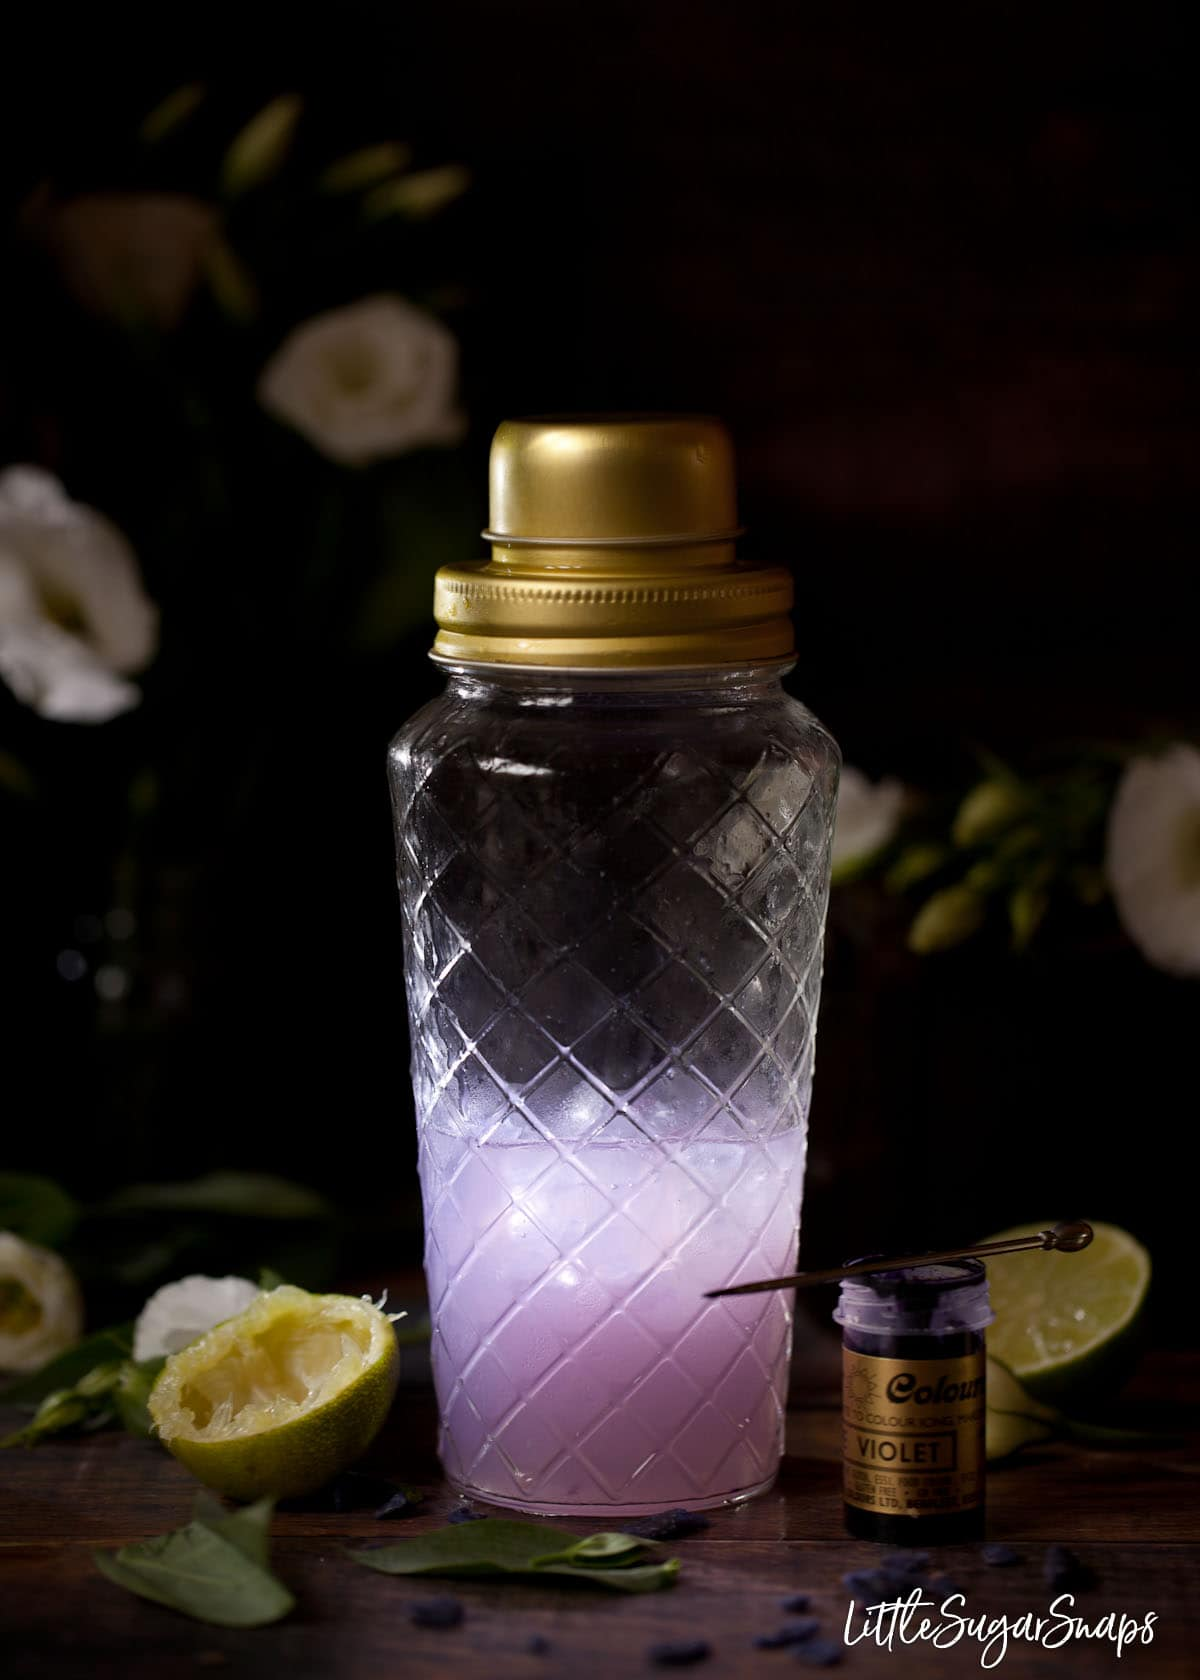 A purple violet cocktail in a shaker with lime halves and violet food dye in shot